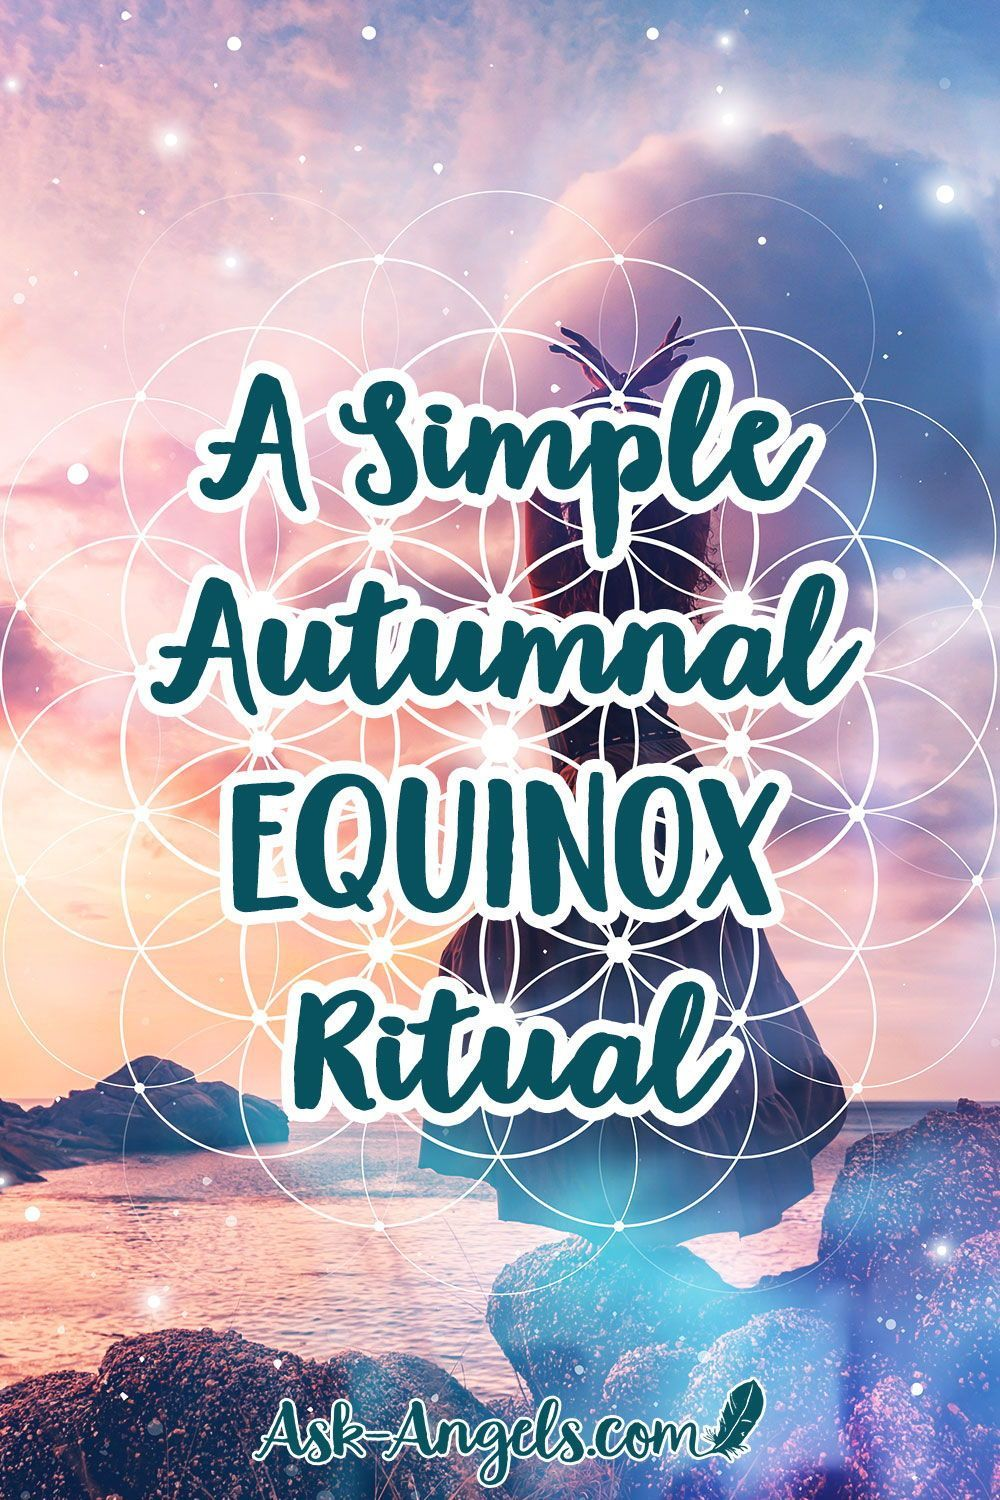 A Simple Autumnal Equinox Ritual #autumnalequinox A Simple Autumnal Equinox Ritual. A simple autumnal equinox ritual to help you return to balance, replenish your inner light and welcome the change of seasons and entrance into fall. #astrological #spiritual #autumnalequinox